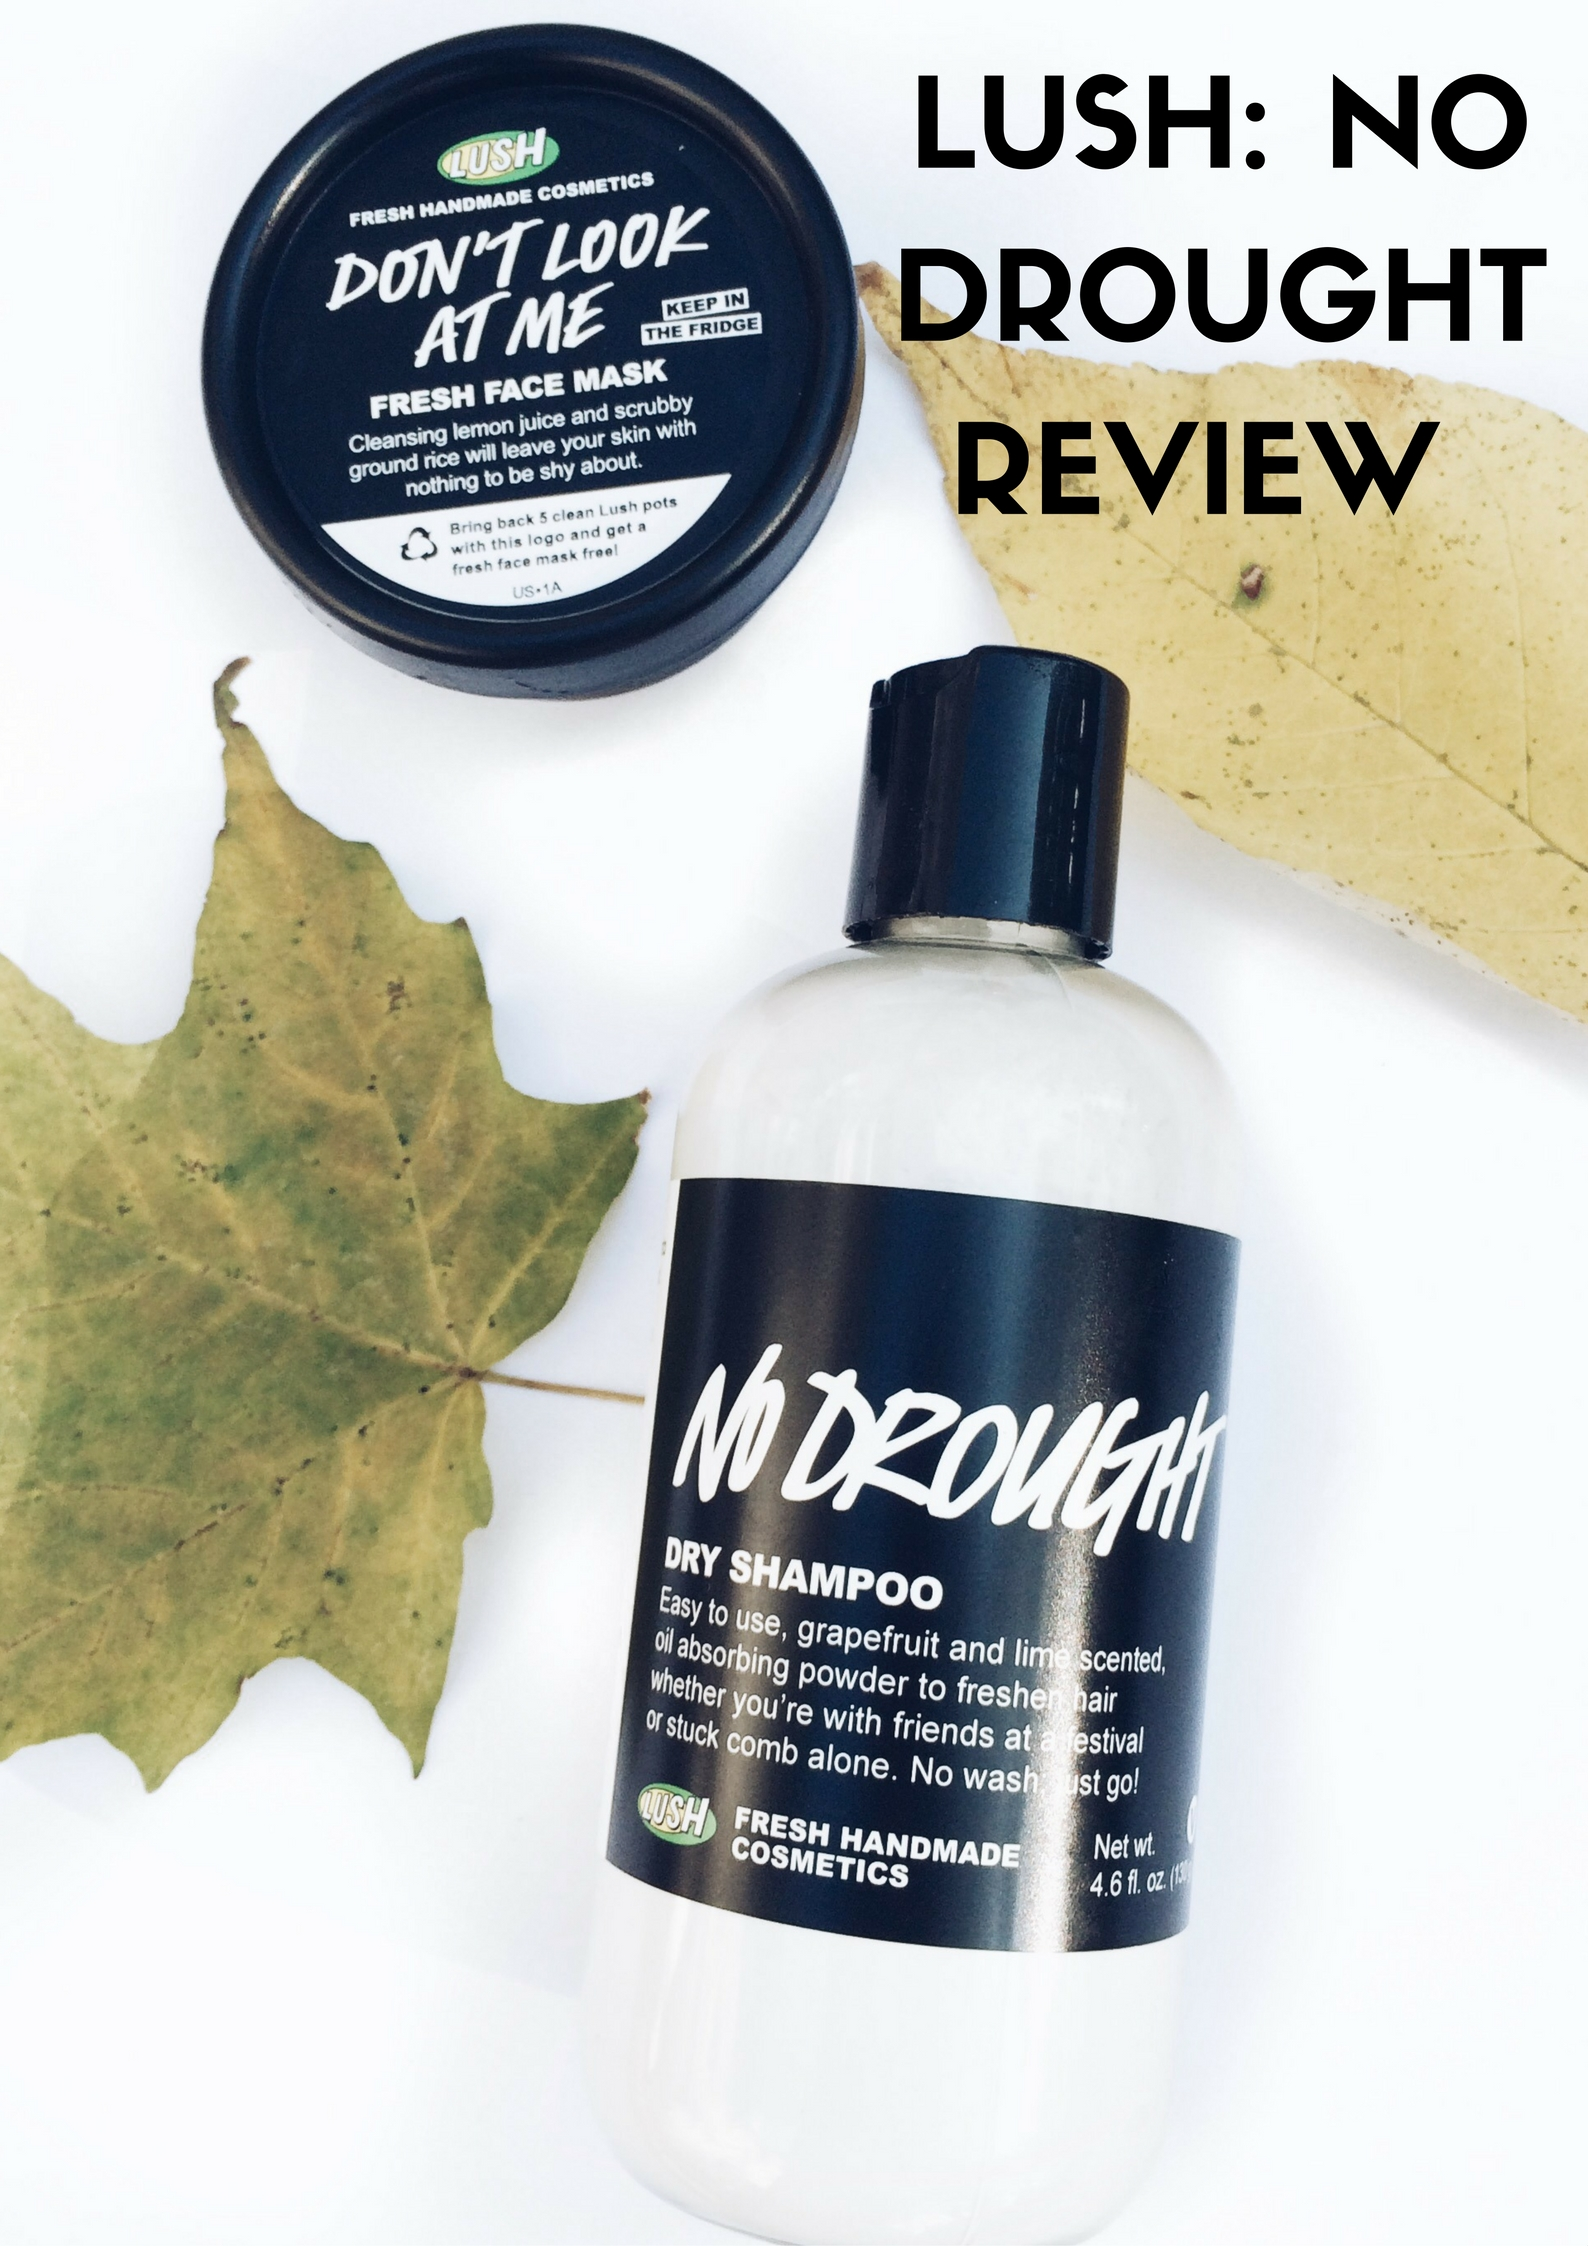 lush-no-drought-review